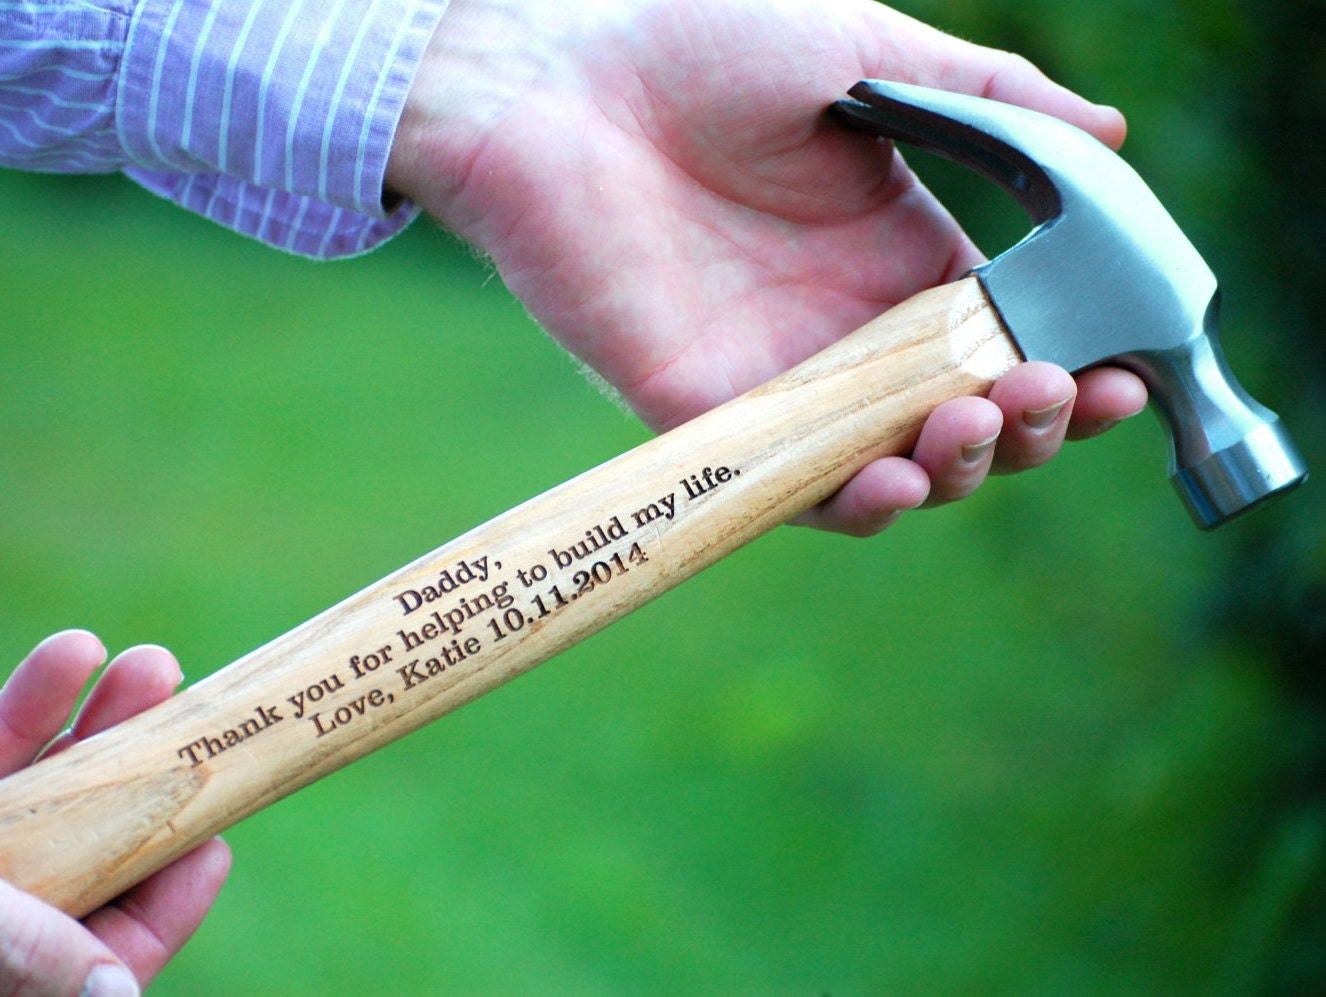 Handmade Wedding Gifts For Bride And Groom: Personalized Hammer Father Of The Bride/Groom Hammer